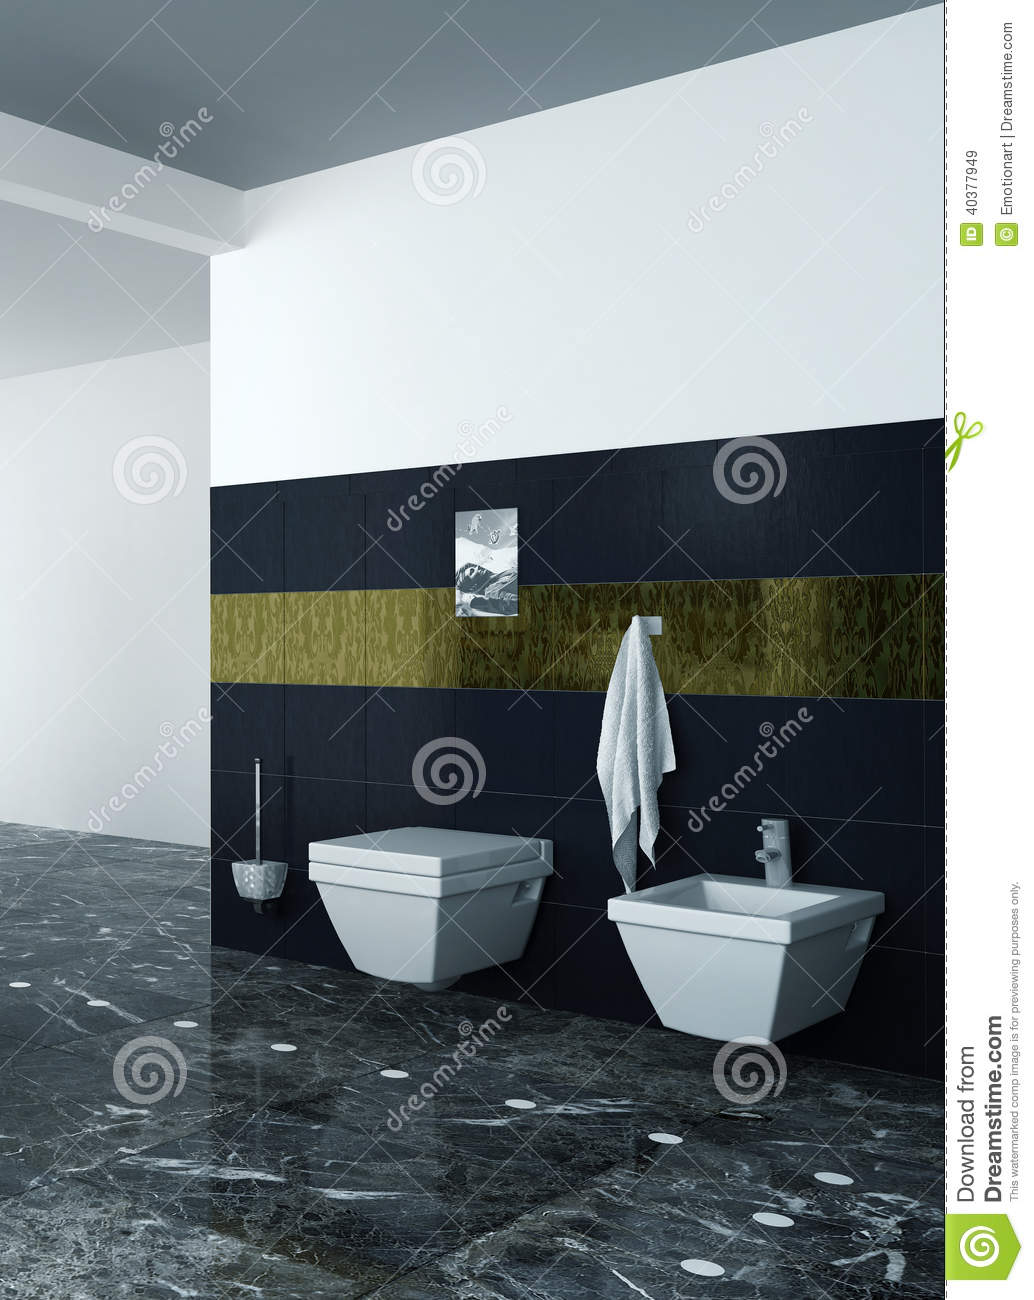 toilette und bidet gegen schwarze fliesen stockfoto bild. Black Bedroom Furniture Sets. Home Design Ideas